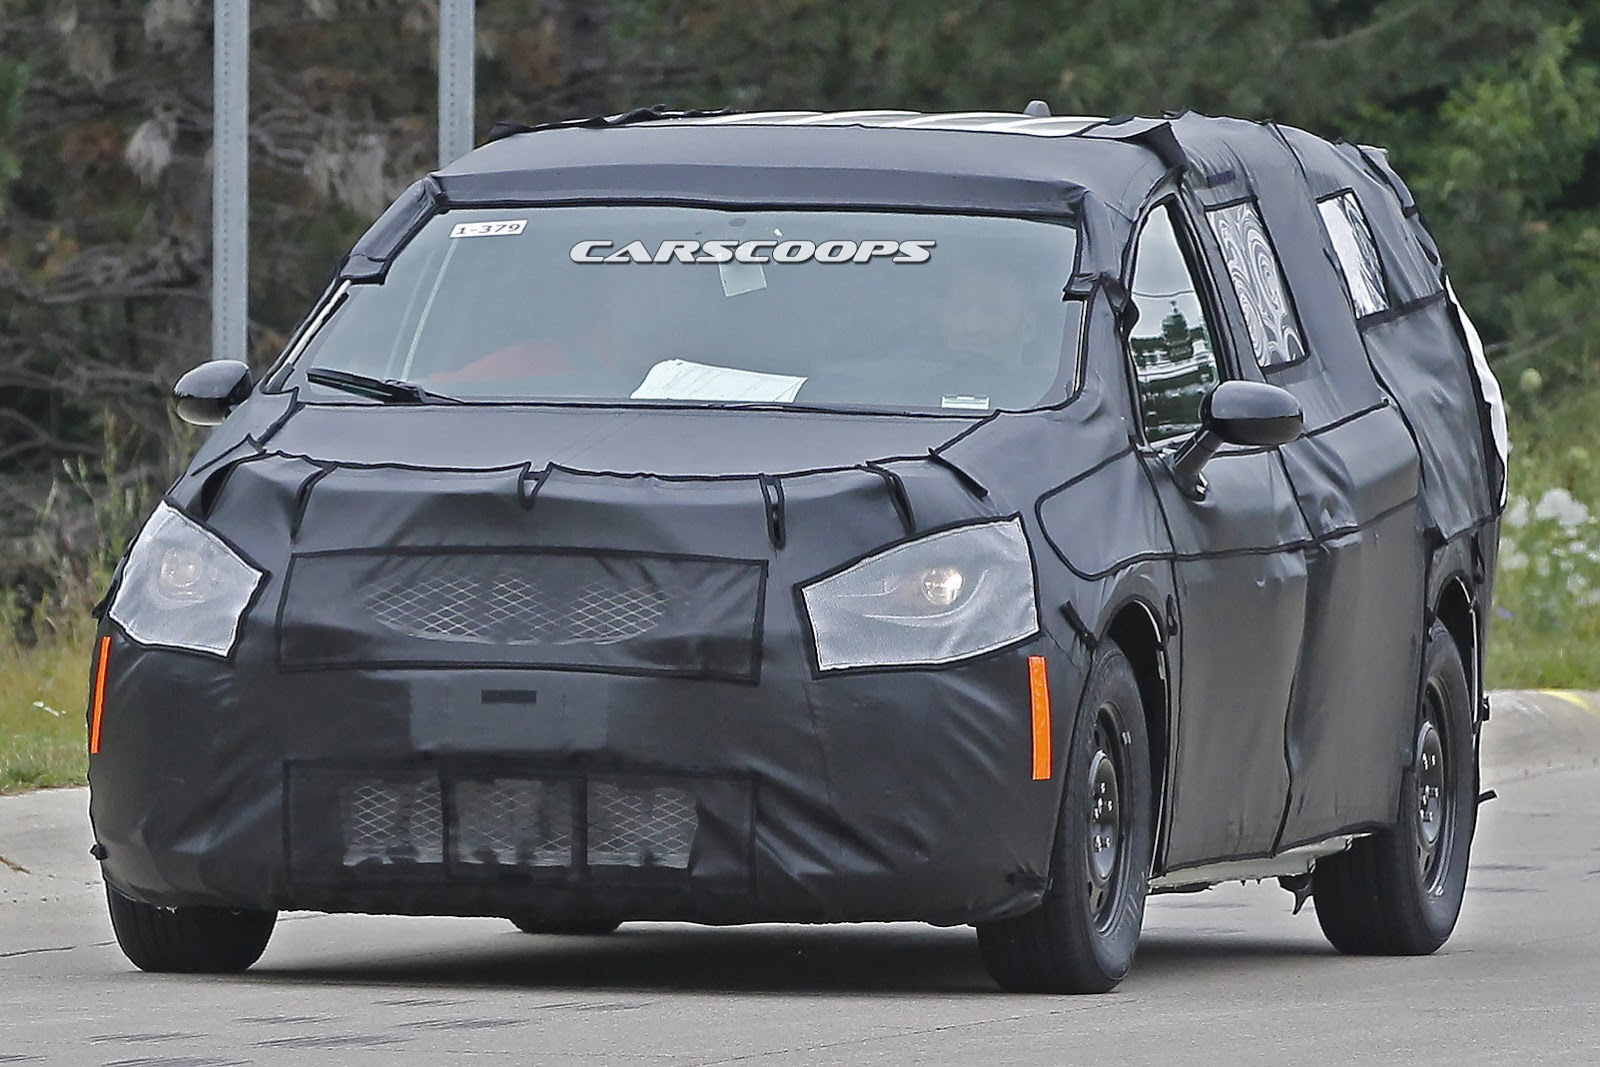 Vwvortex com 2017 chrysler town country dodge grand caravan spied for the first time